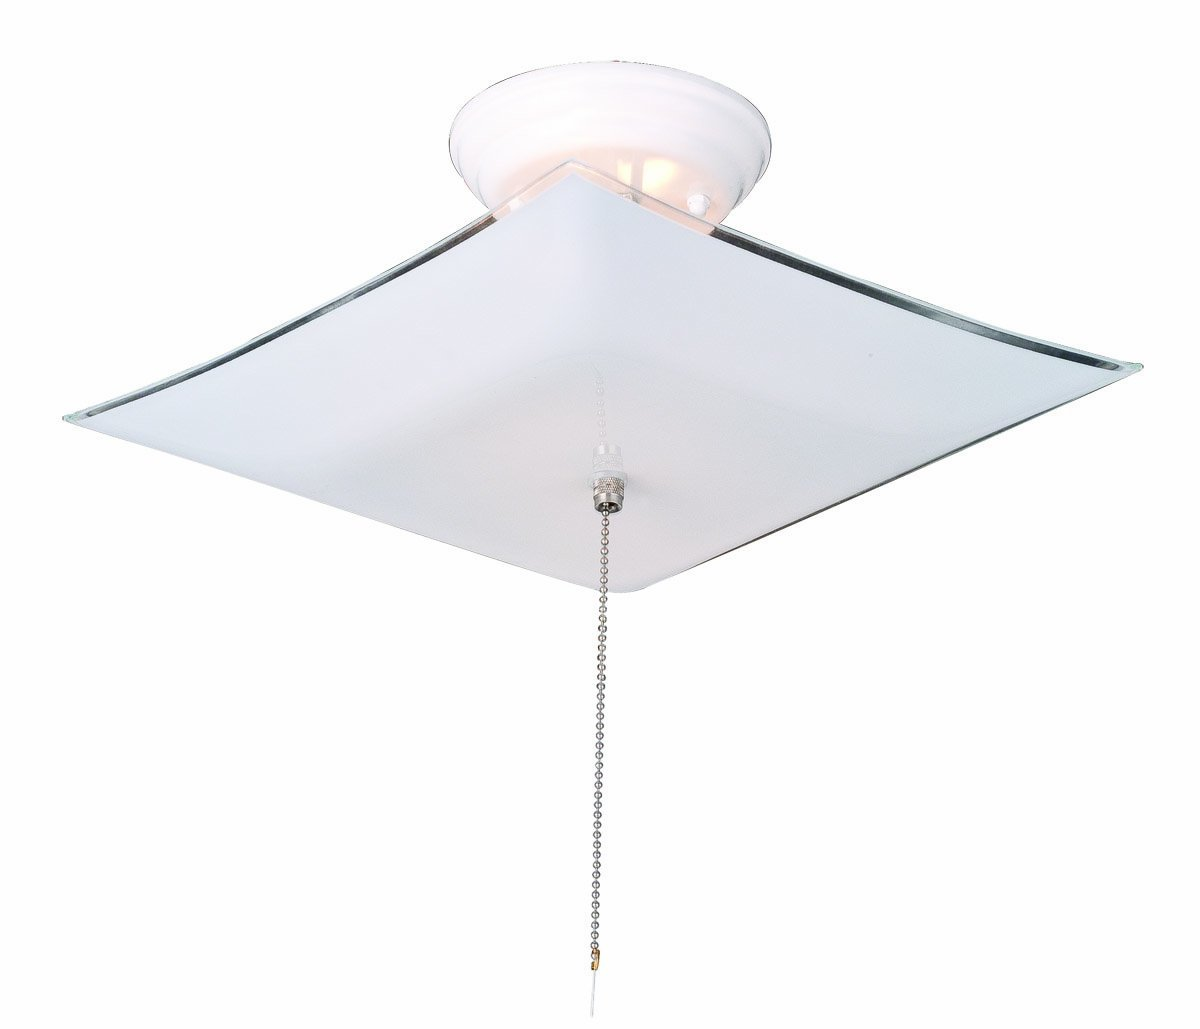 Design House 517805 2 Light Ceiling Mount Light Fixture with Pull ...